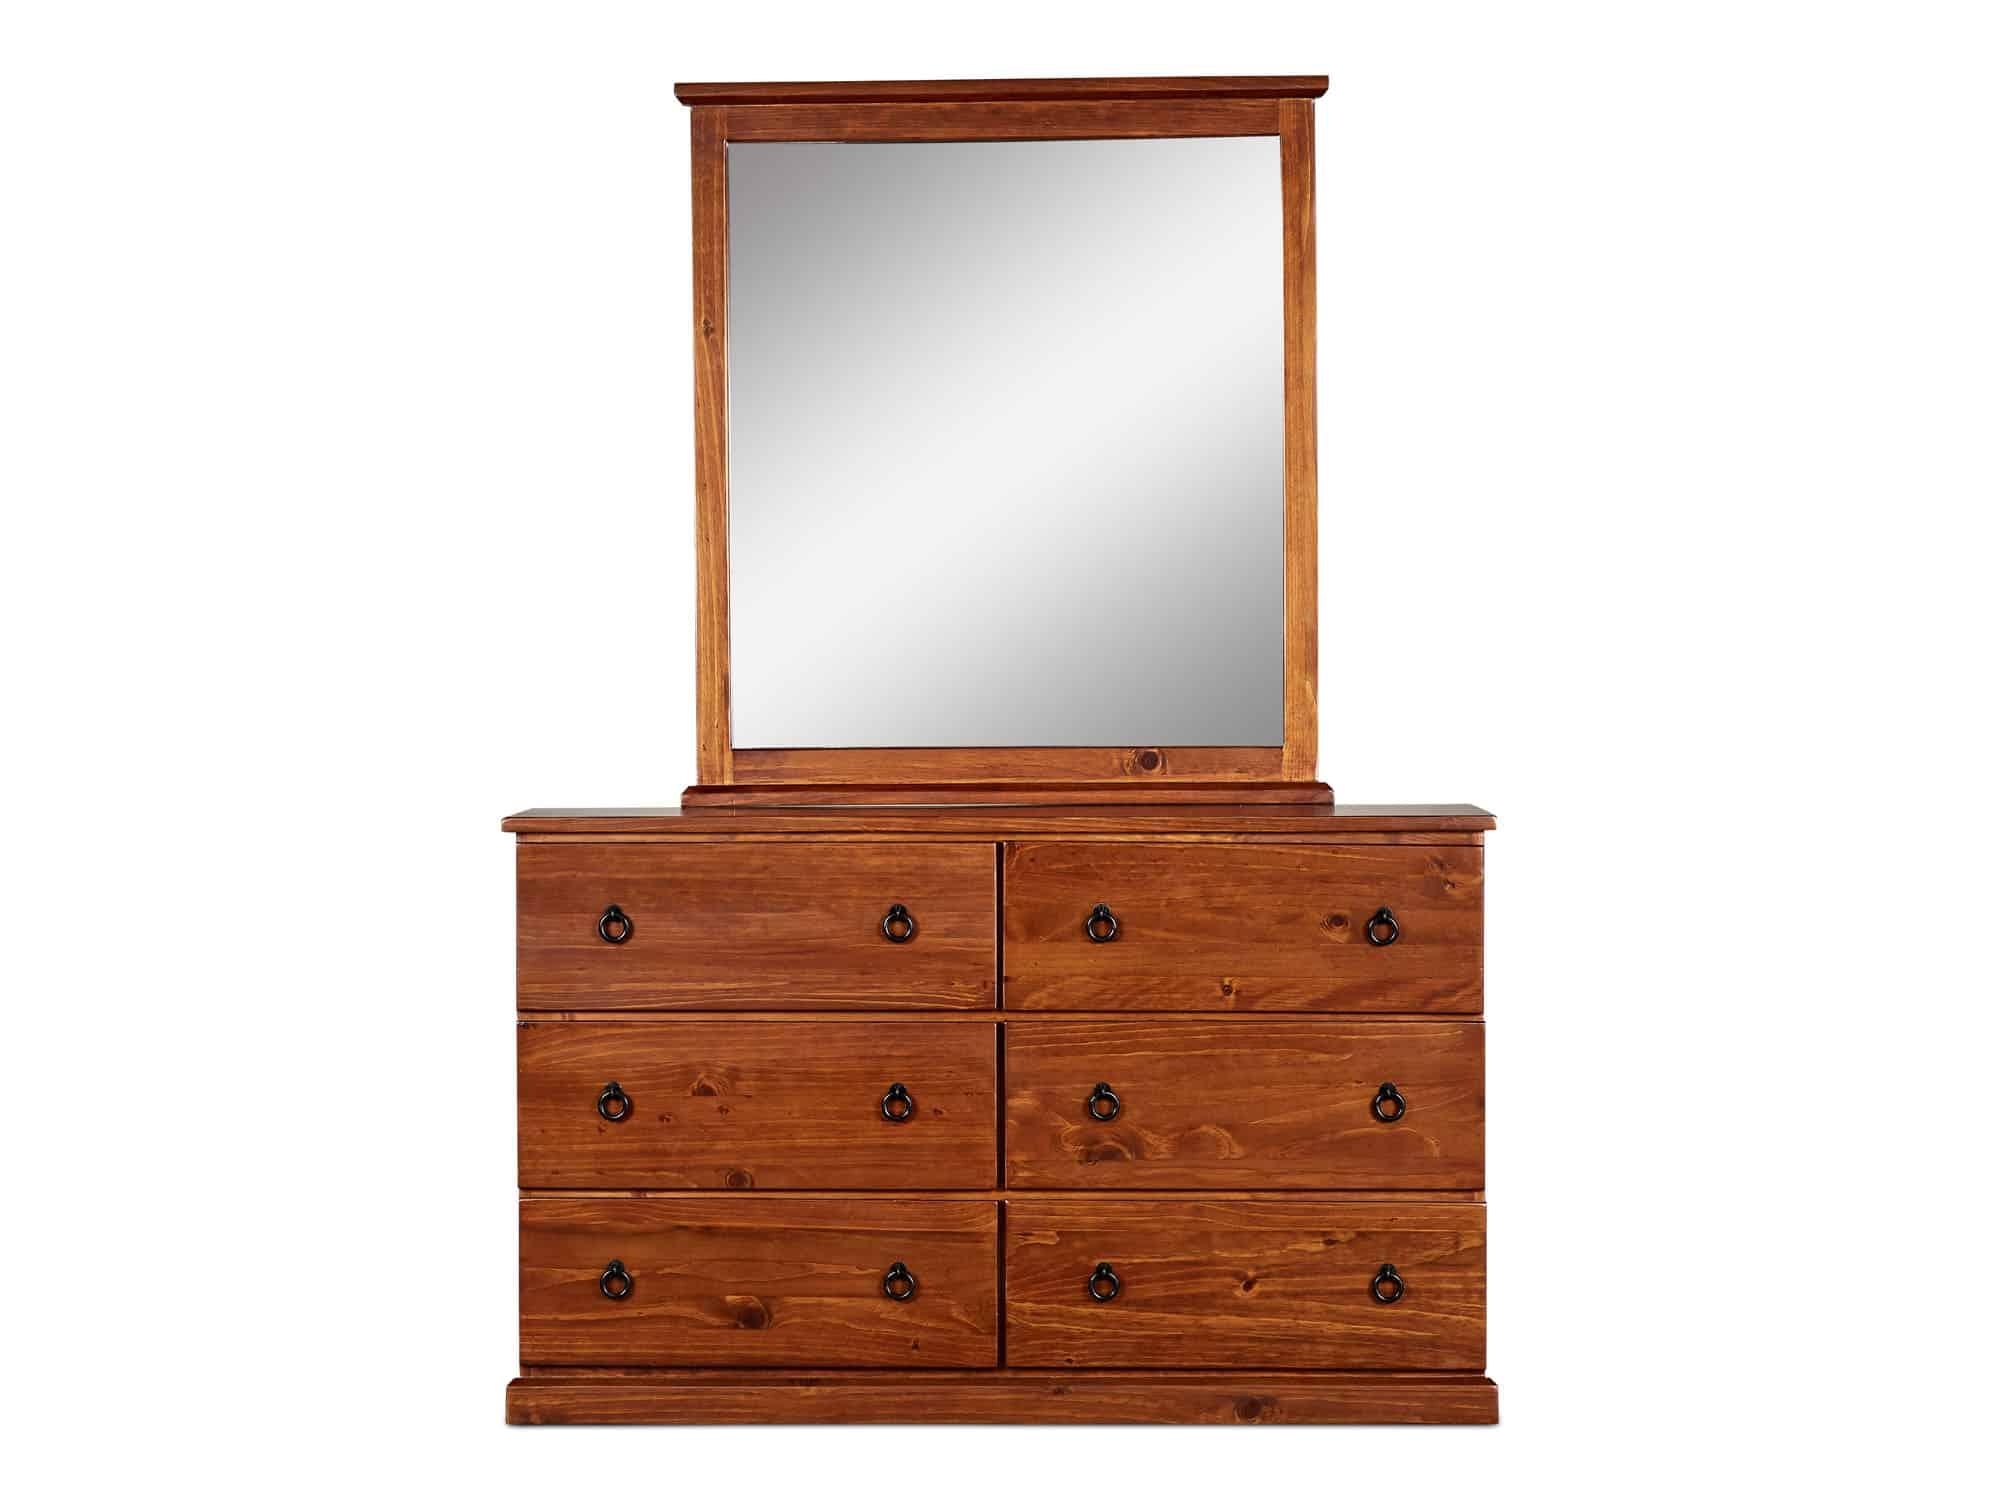 dressers big save furniture 14275 | pinehurst 6 drawer dresser with mirror front